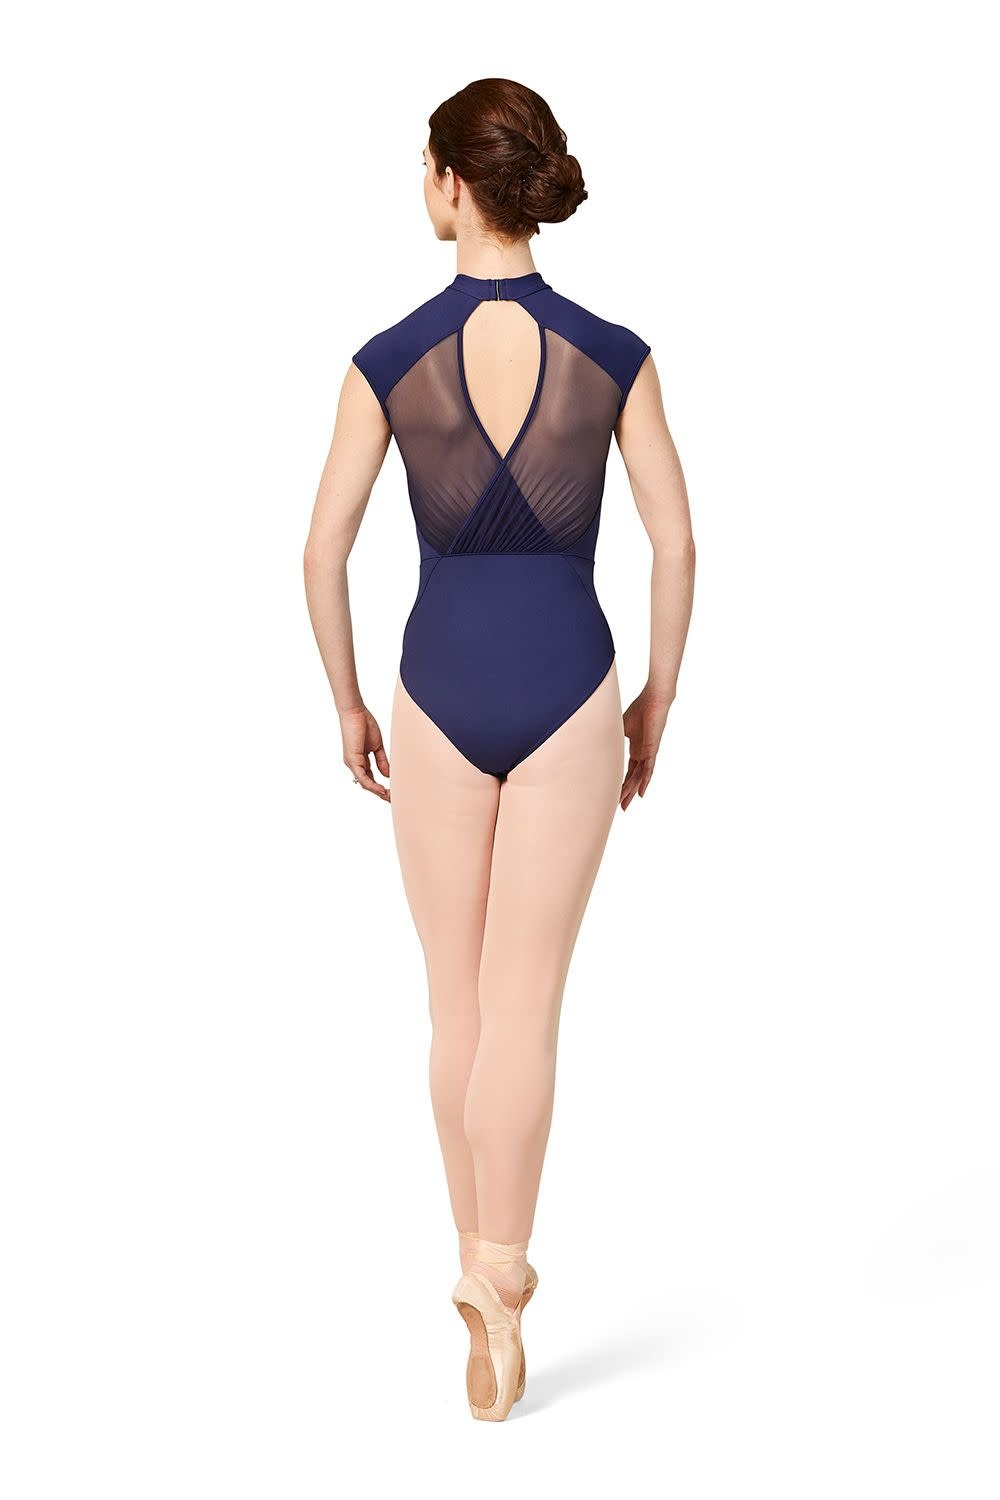 Mirella M5091LM-High Neck Gathered mesh Cap Sleeve Leotard